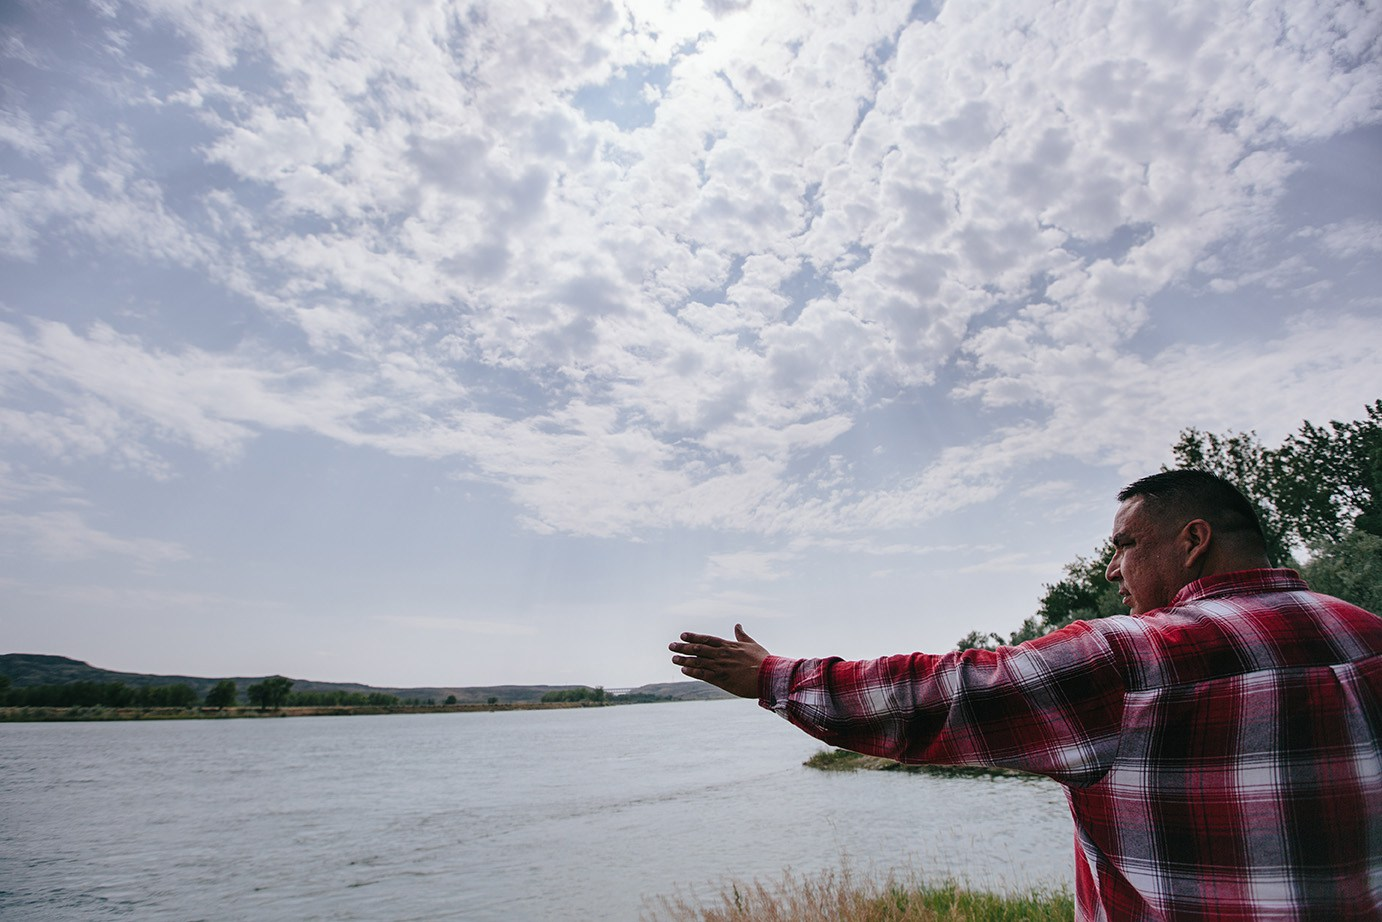 'We're just outnumbered and out-moneyed': Fort Peck Tribes fight Keystone XL